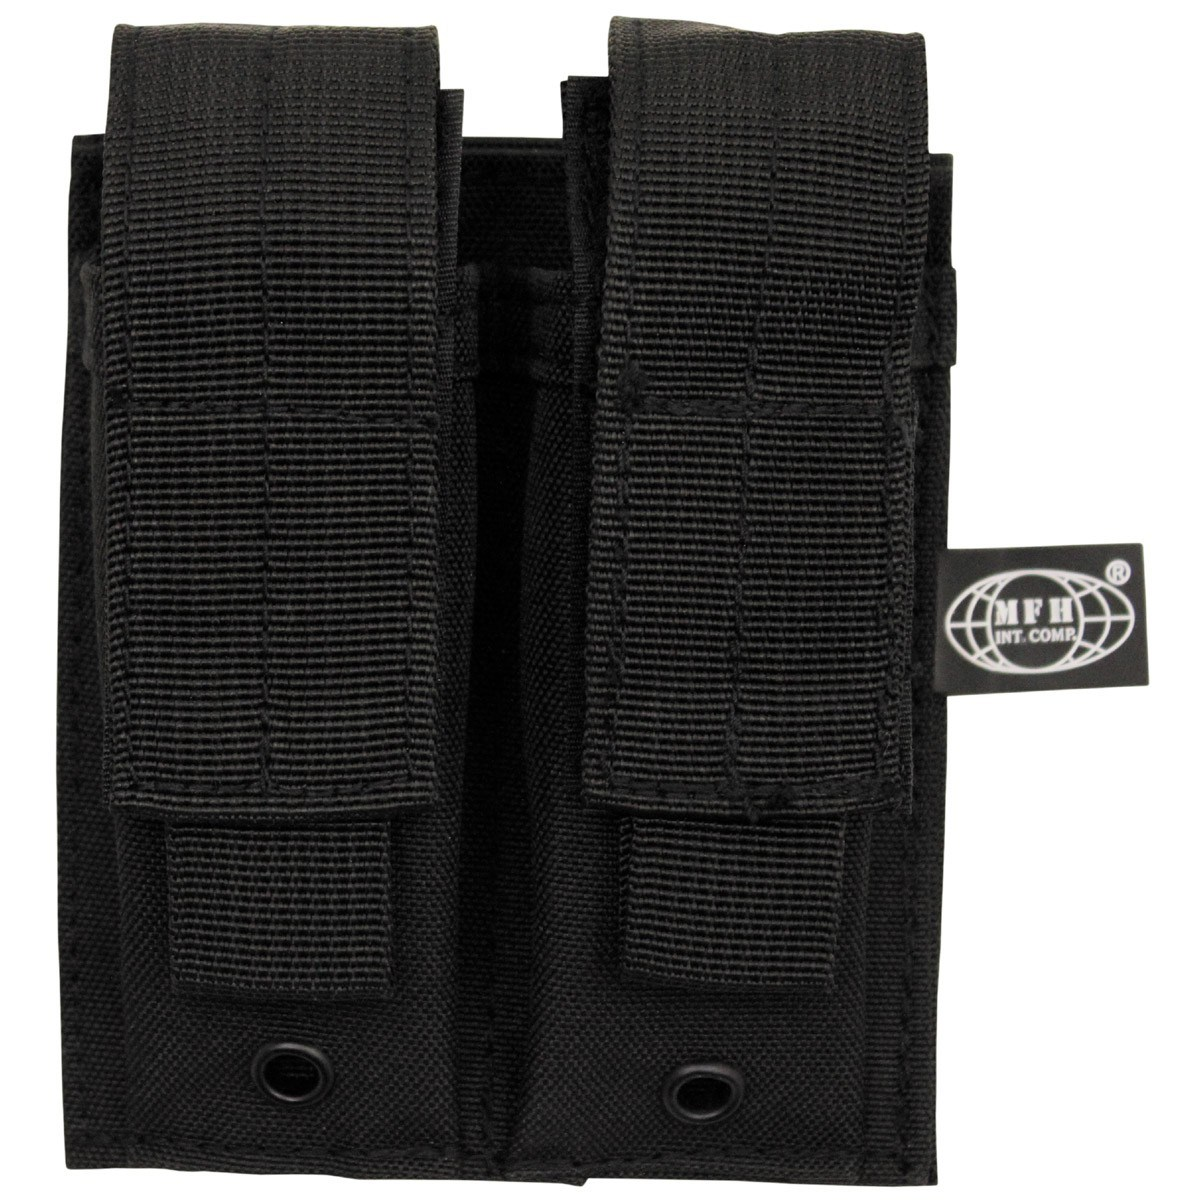 MOLLE double pouch for pistol magazines BLACK MFH int. comp. 30617A L-11